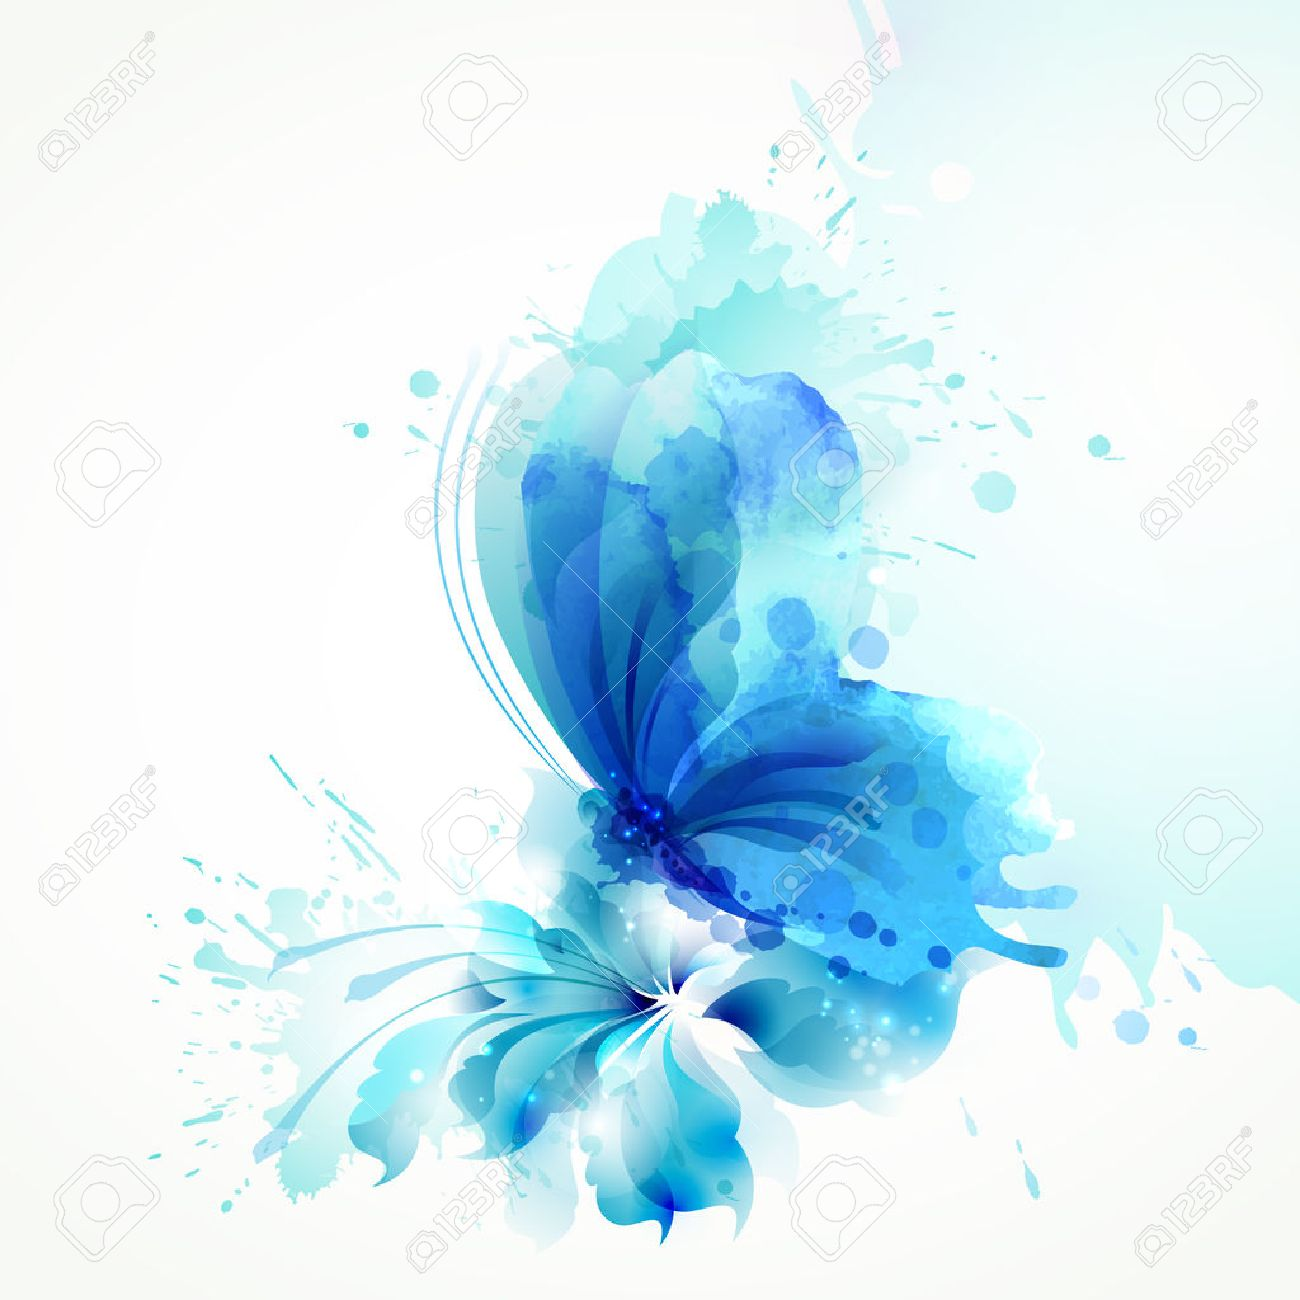 Beautiful watercolor abstract blue butterfly on the flower on the white background. - 72315075